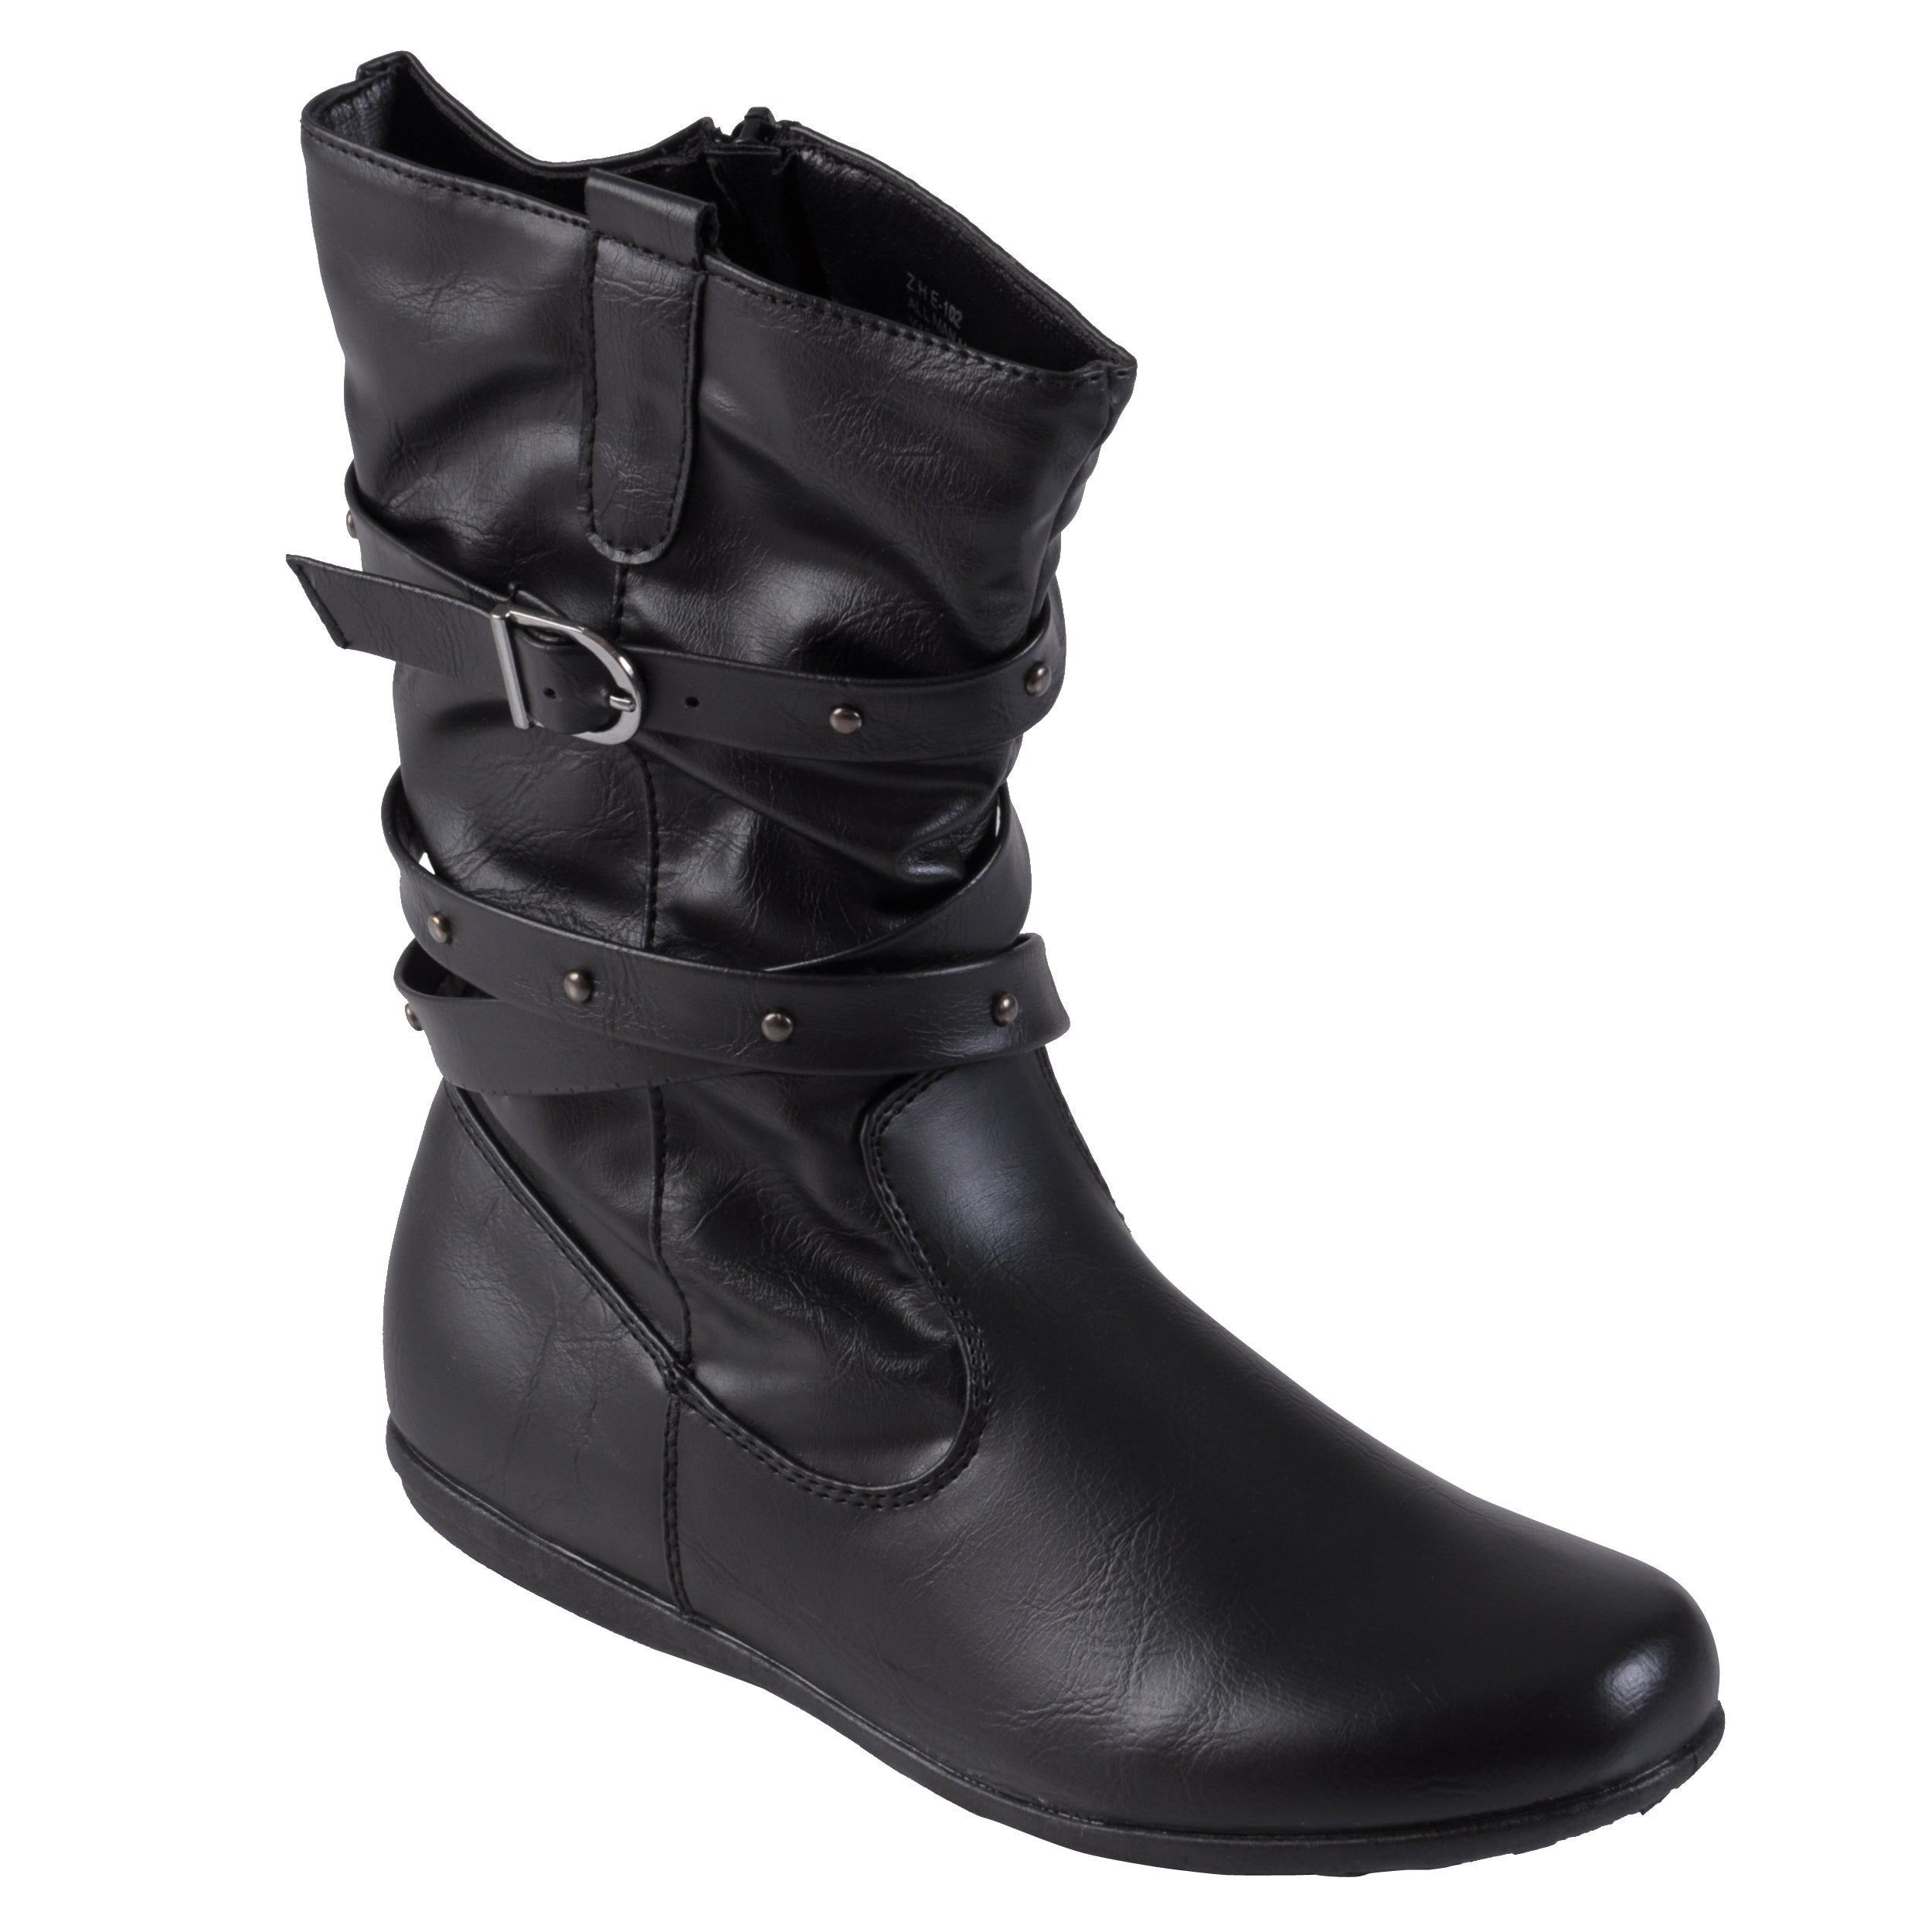 Journee Collection Girls Buckle Faux Leather Round Toe Boots